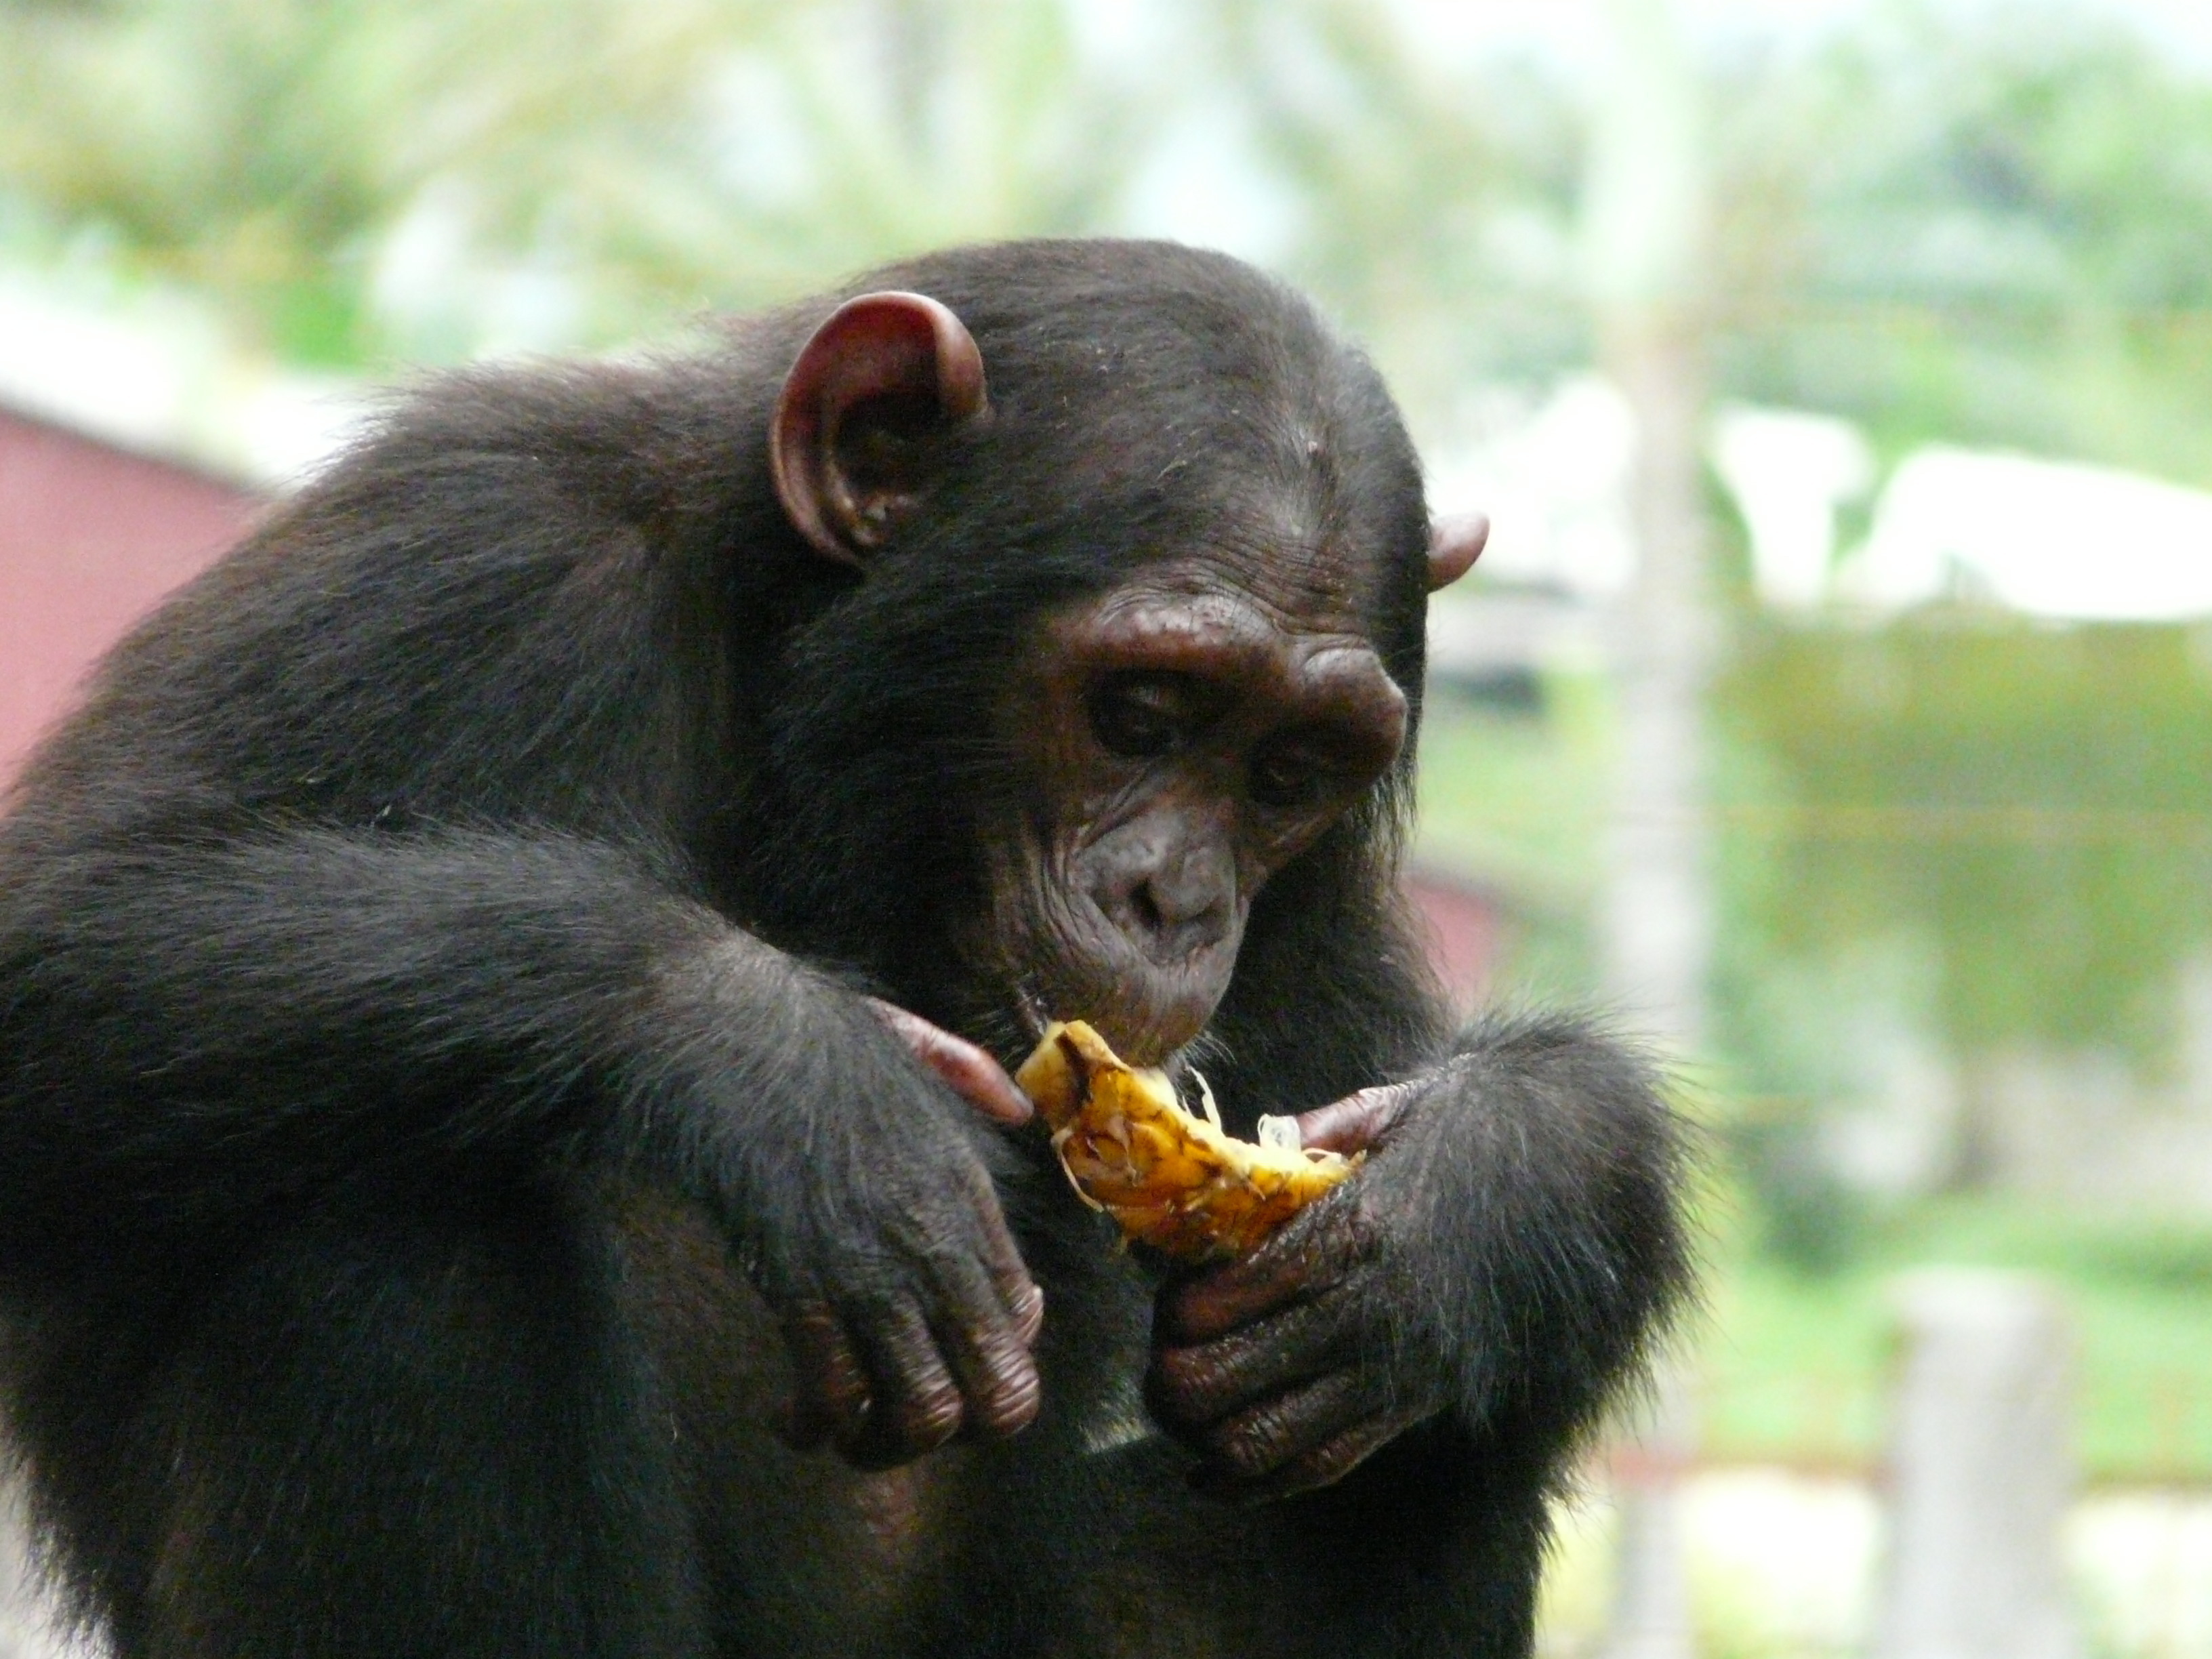 A Nigeria-Cameroon chimp rescued from illegal animal trafficking who now lives at the Limbe Wildlife Center in Cameroon.  -Photo Credit: Paul Sesink-Clee